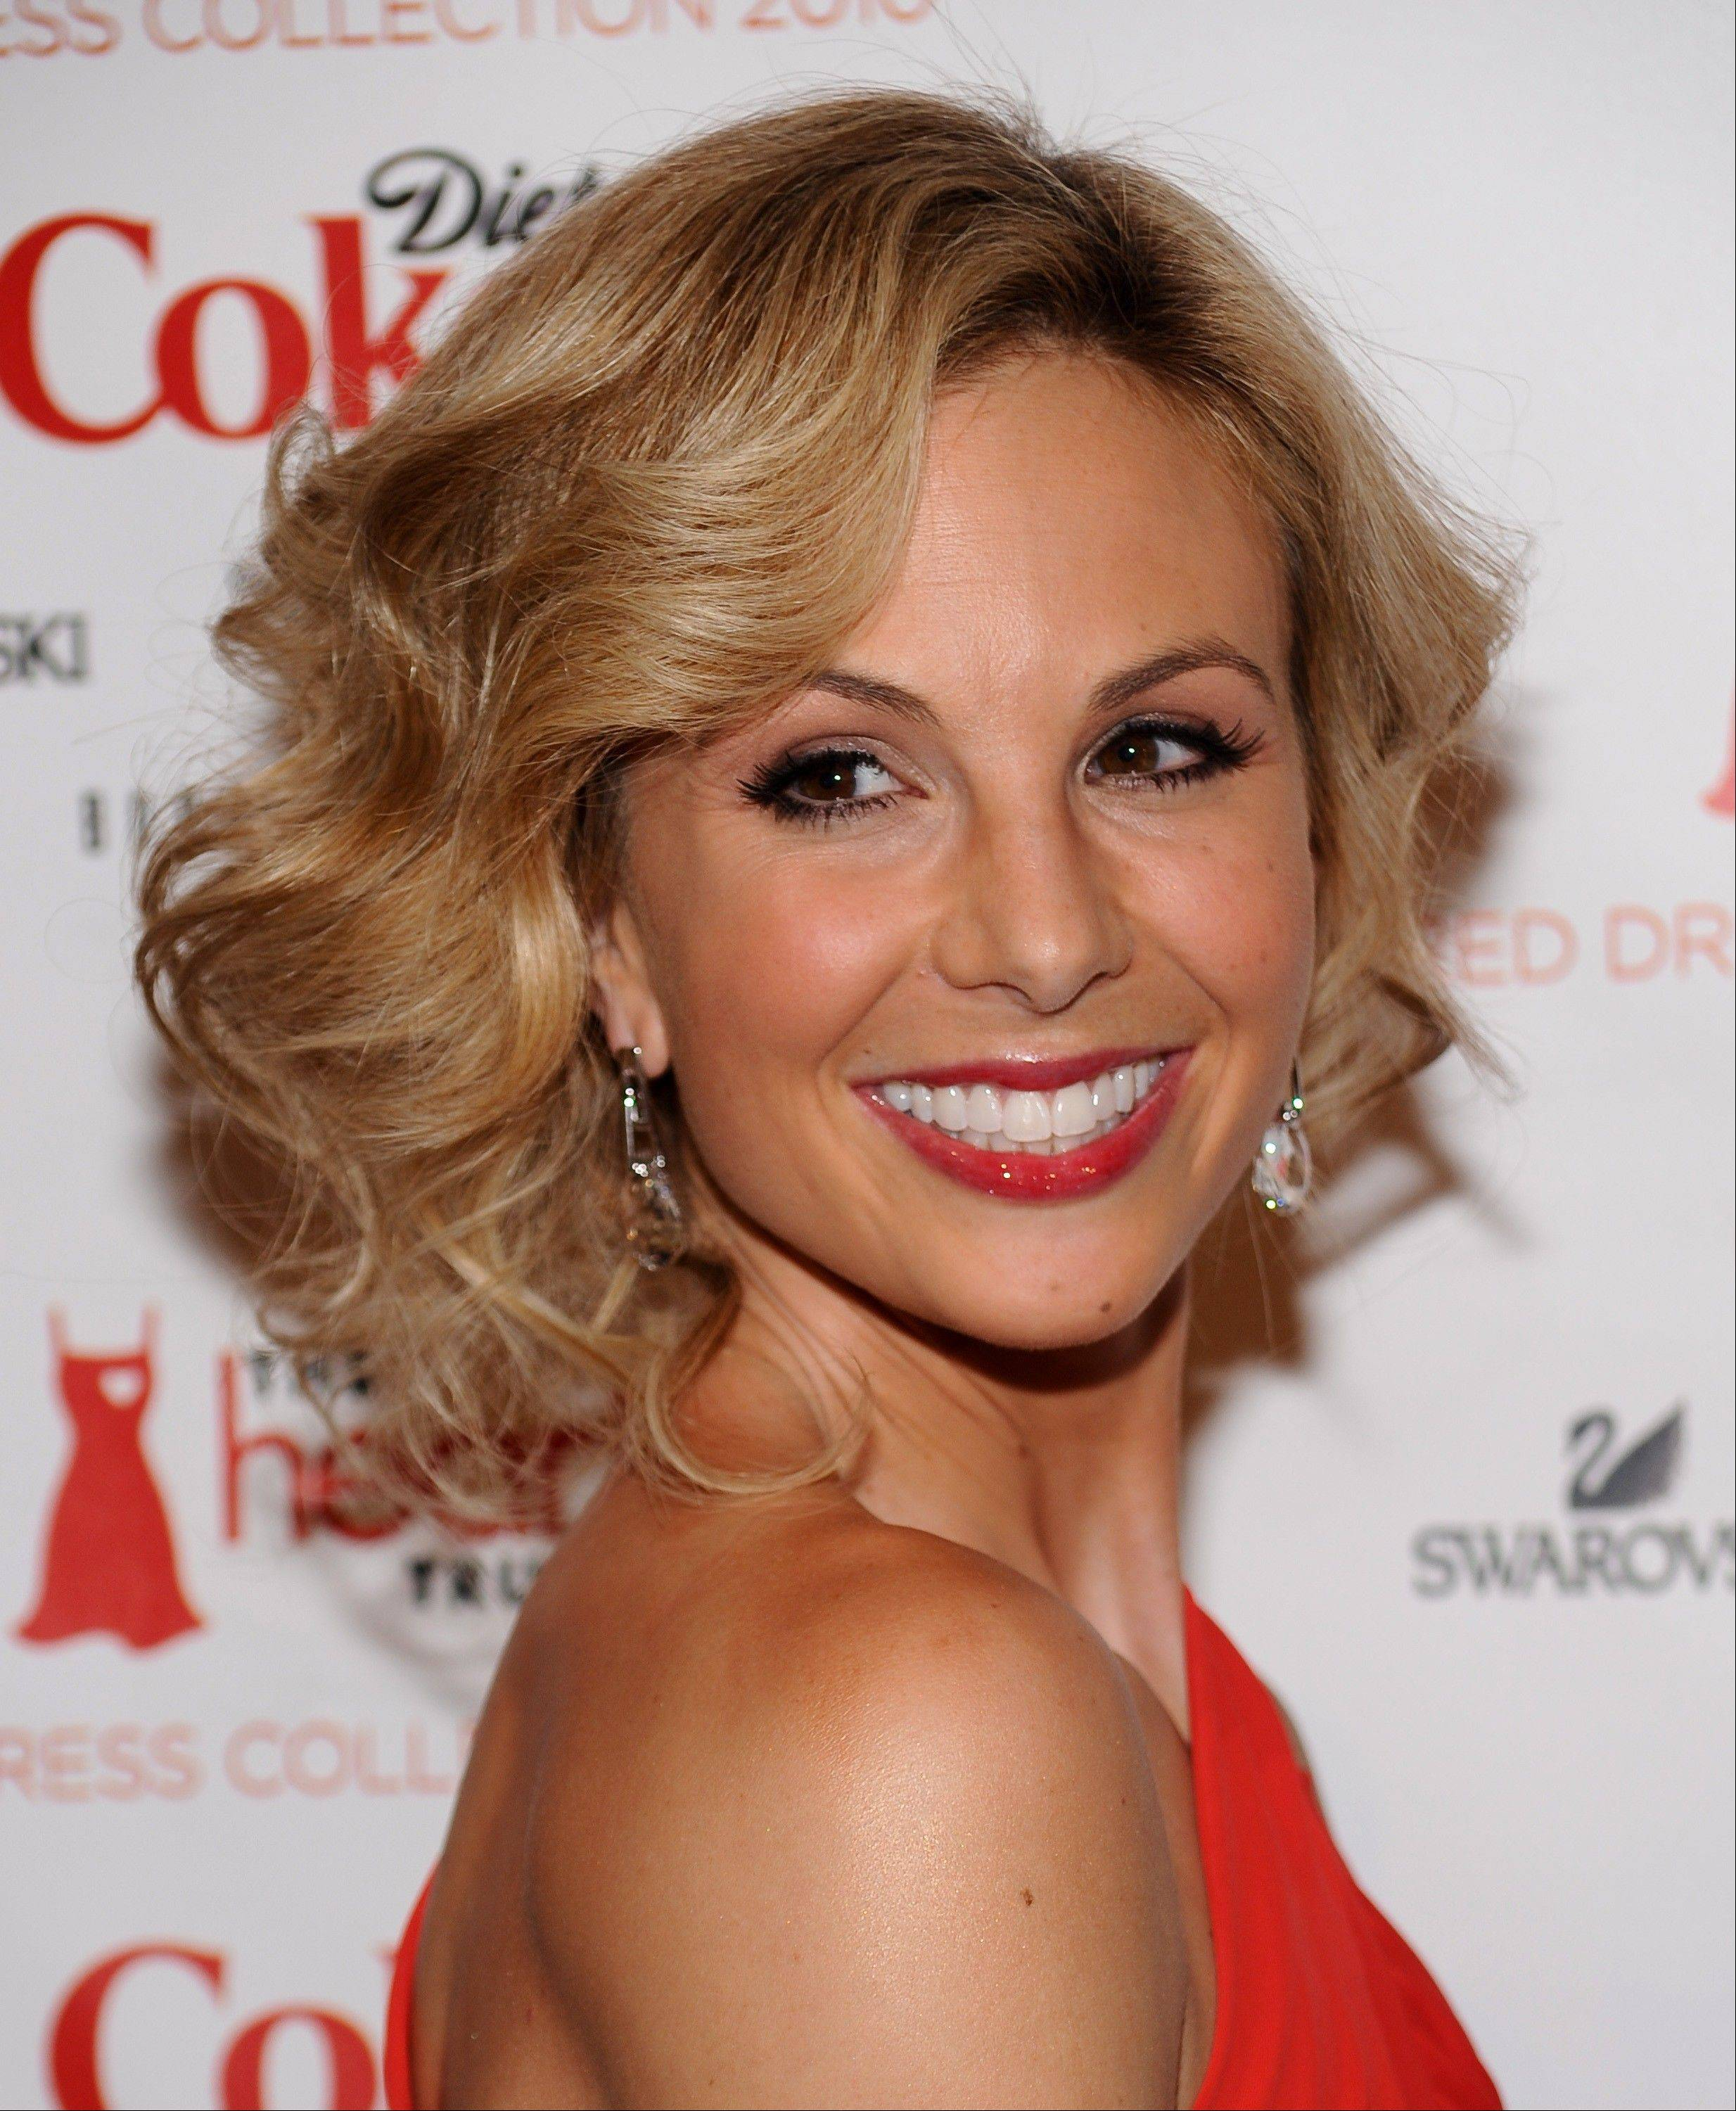 In this Feb. 11, 2010 file photo, television personality Elisabeth Hasselbeck arrives at The Heart Truth�s Red Dress Collection 2010 fashion show in New York. Hasselbeck is leaving the desk at �The View� for the couch on Fox News Channel�s �Fox & Friends.� The news network said Tuesday, July 9, 2013, that Hasselbeck, who has been on Barbara Walters� syndicated daytime show for a decade, will join co-anchors Steve Doocy and Brian Kilmeade on Fox�s morning show in September.